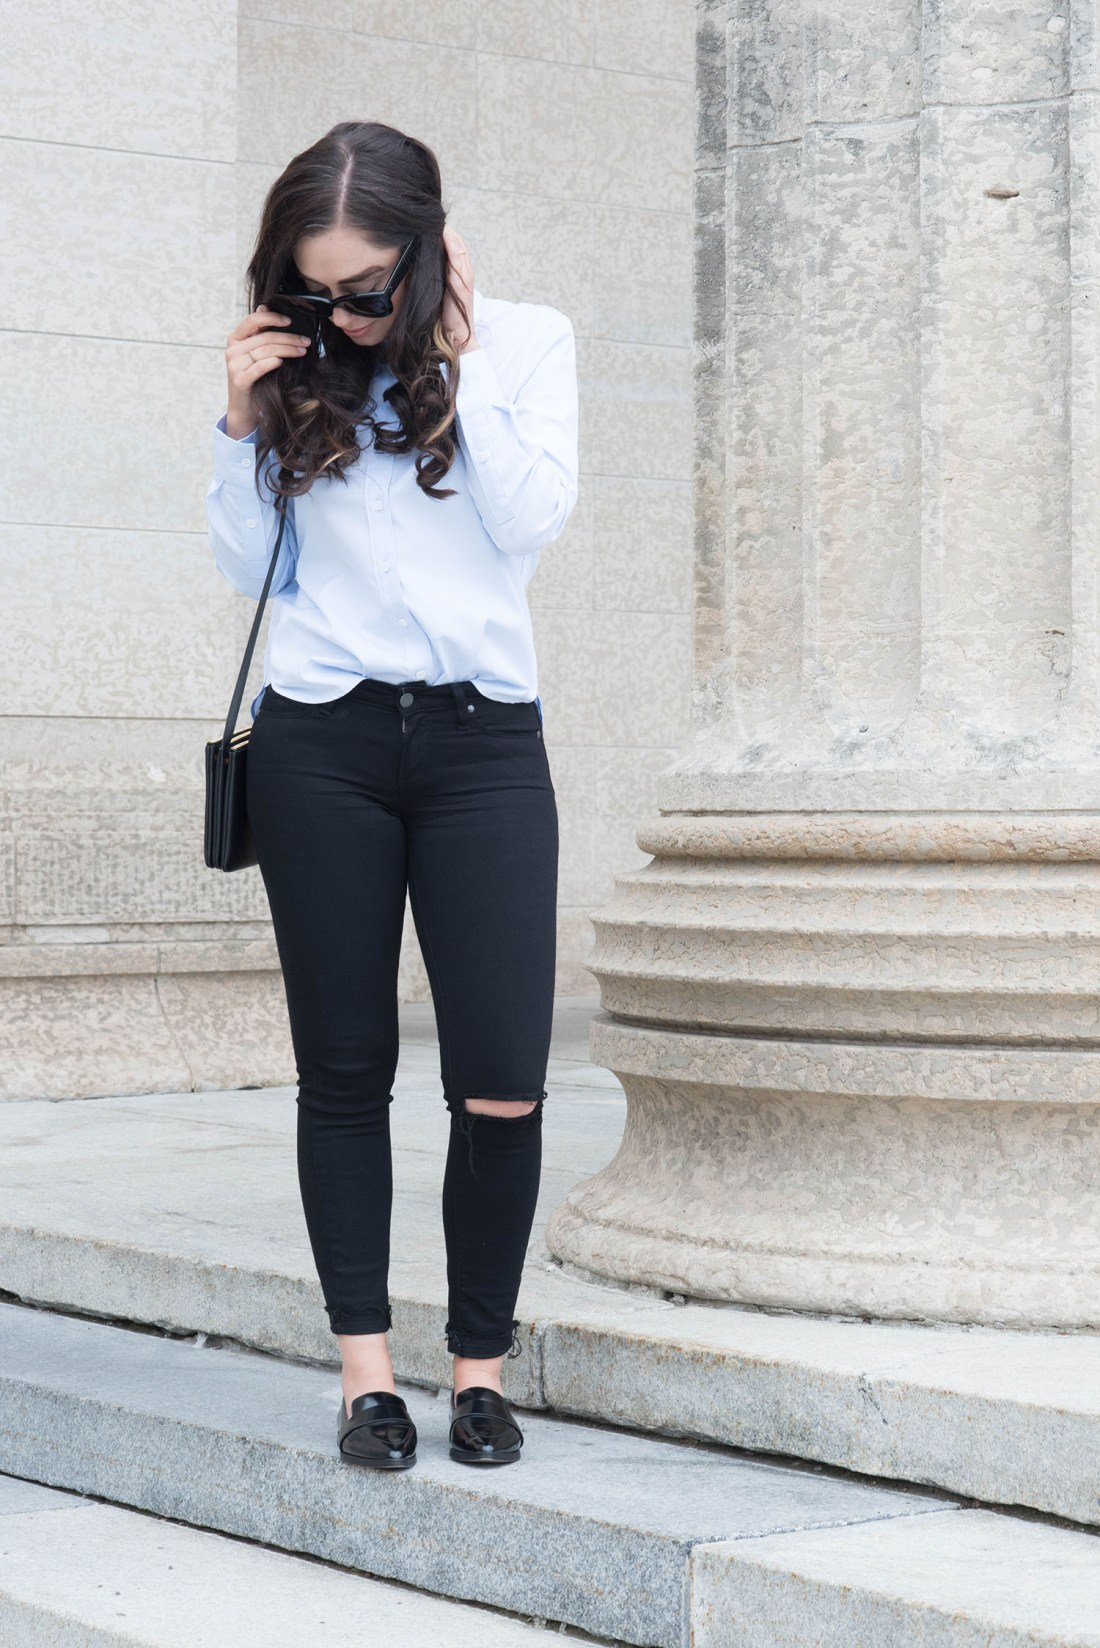 Fashion blogger Cee Fardoe of Coco & Vera stands at the Manitoba Legislature wearing Charles & Keith Loafers and Paige Denim jeans